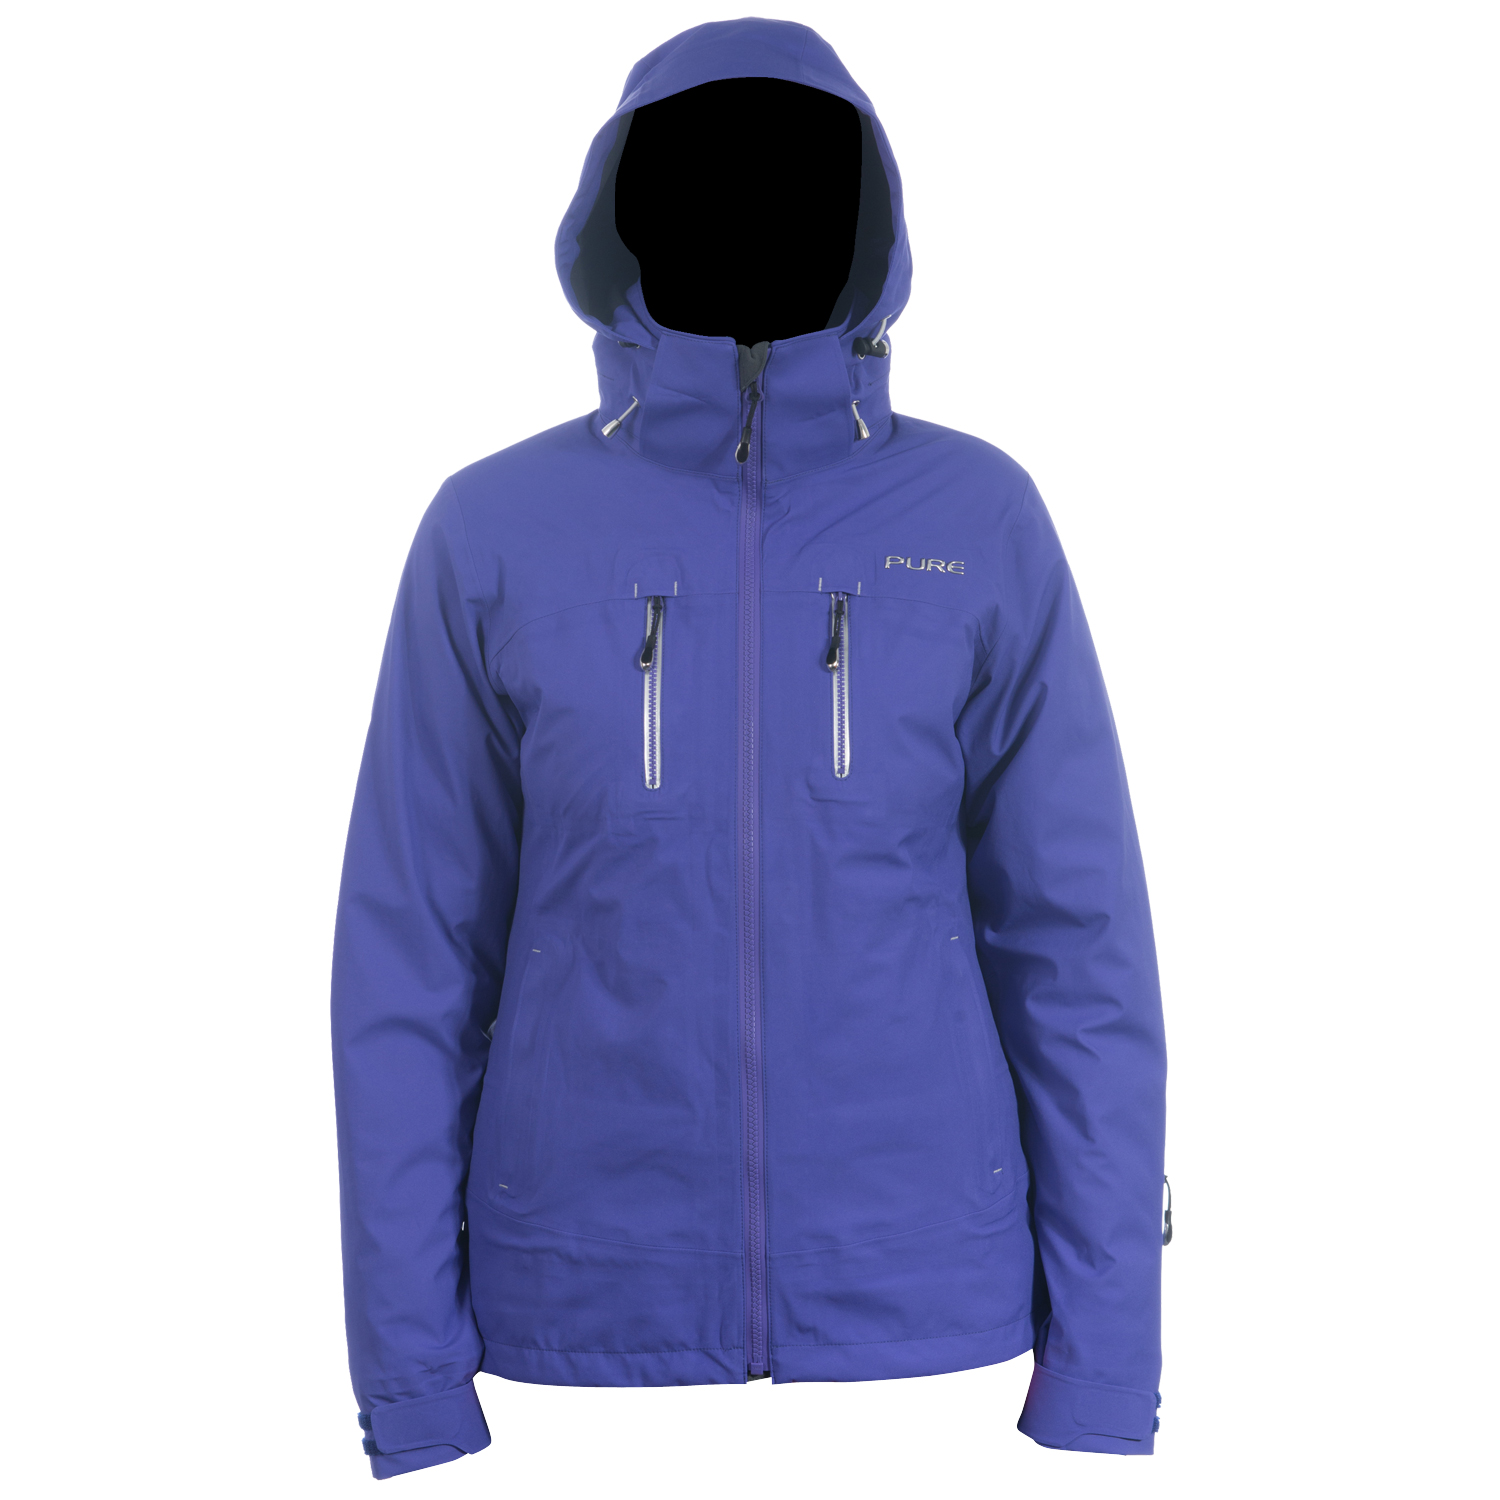 Monte Rosa Jacket - Purple